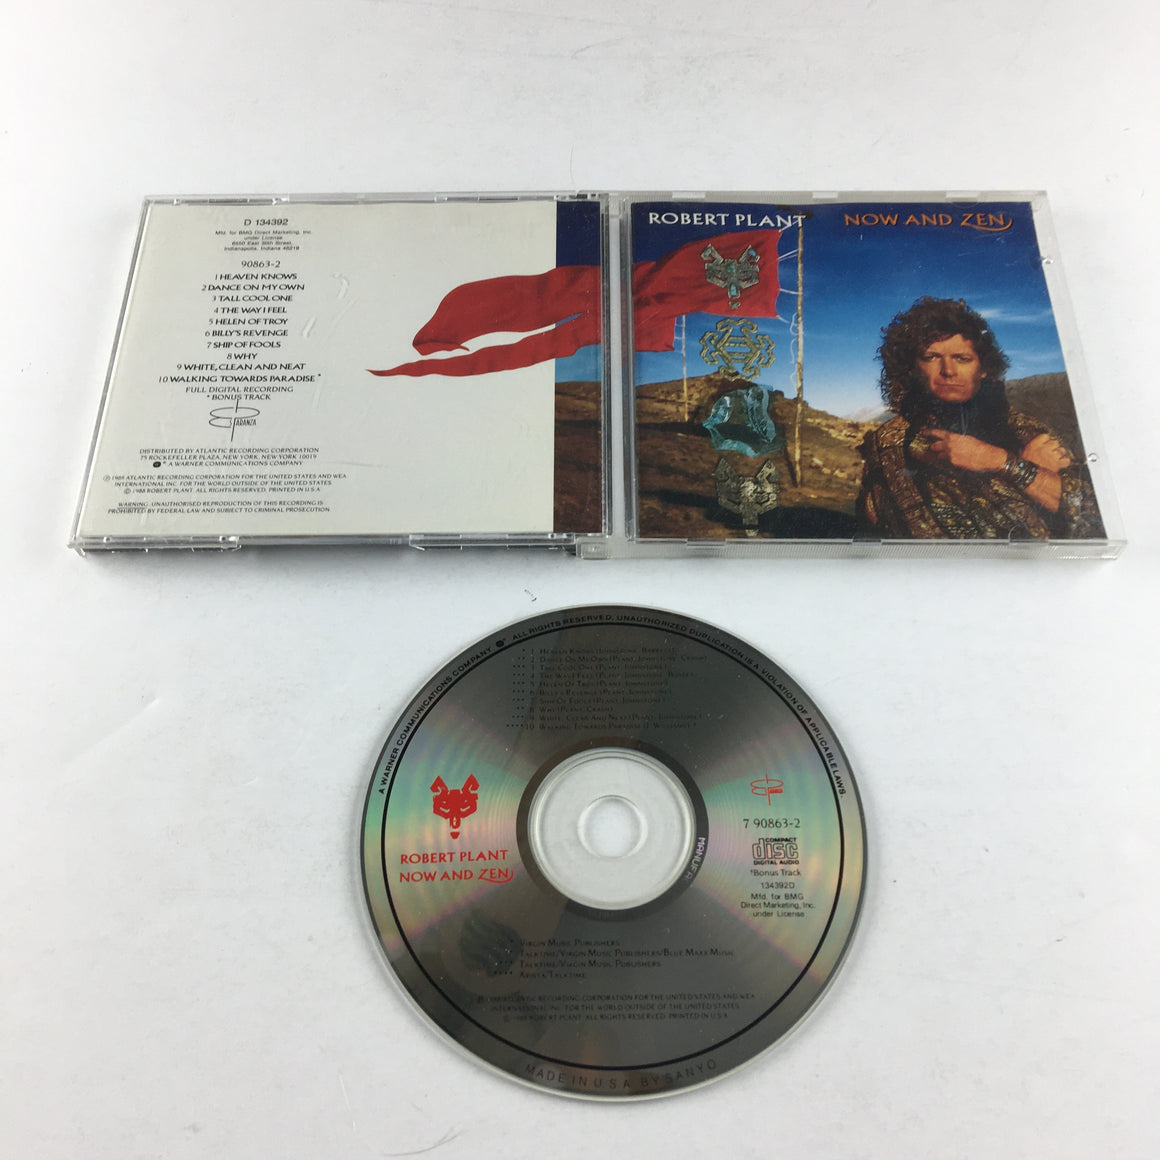 Robert Plant Now And Zen Used CD VG+ 7 90863-2